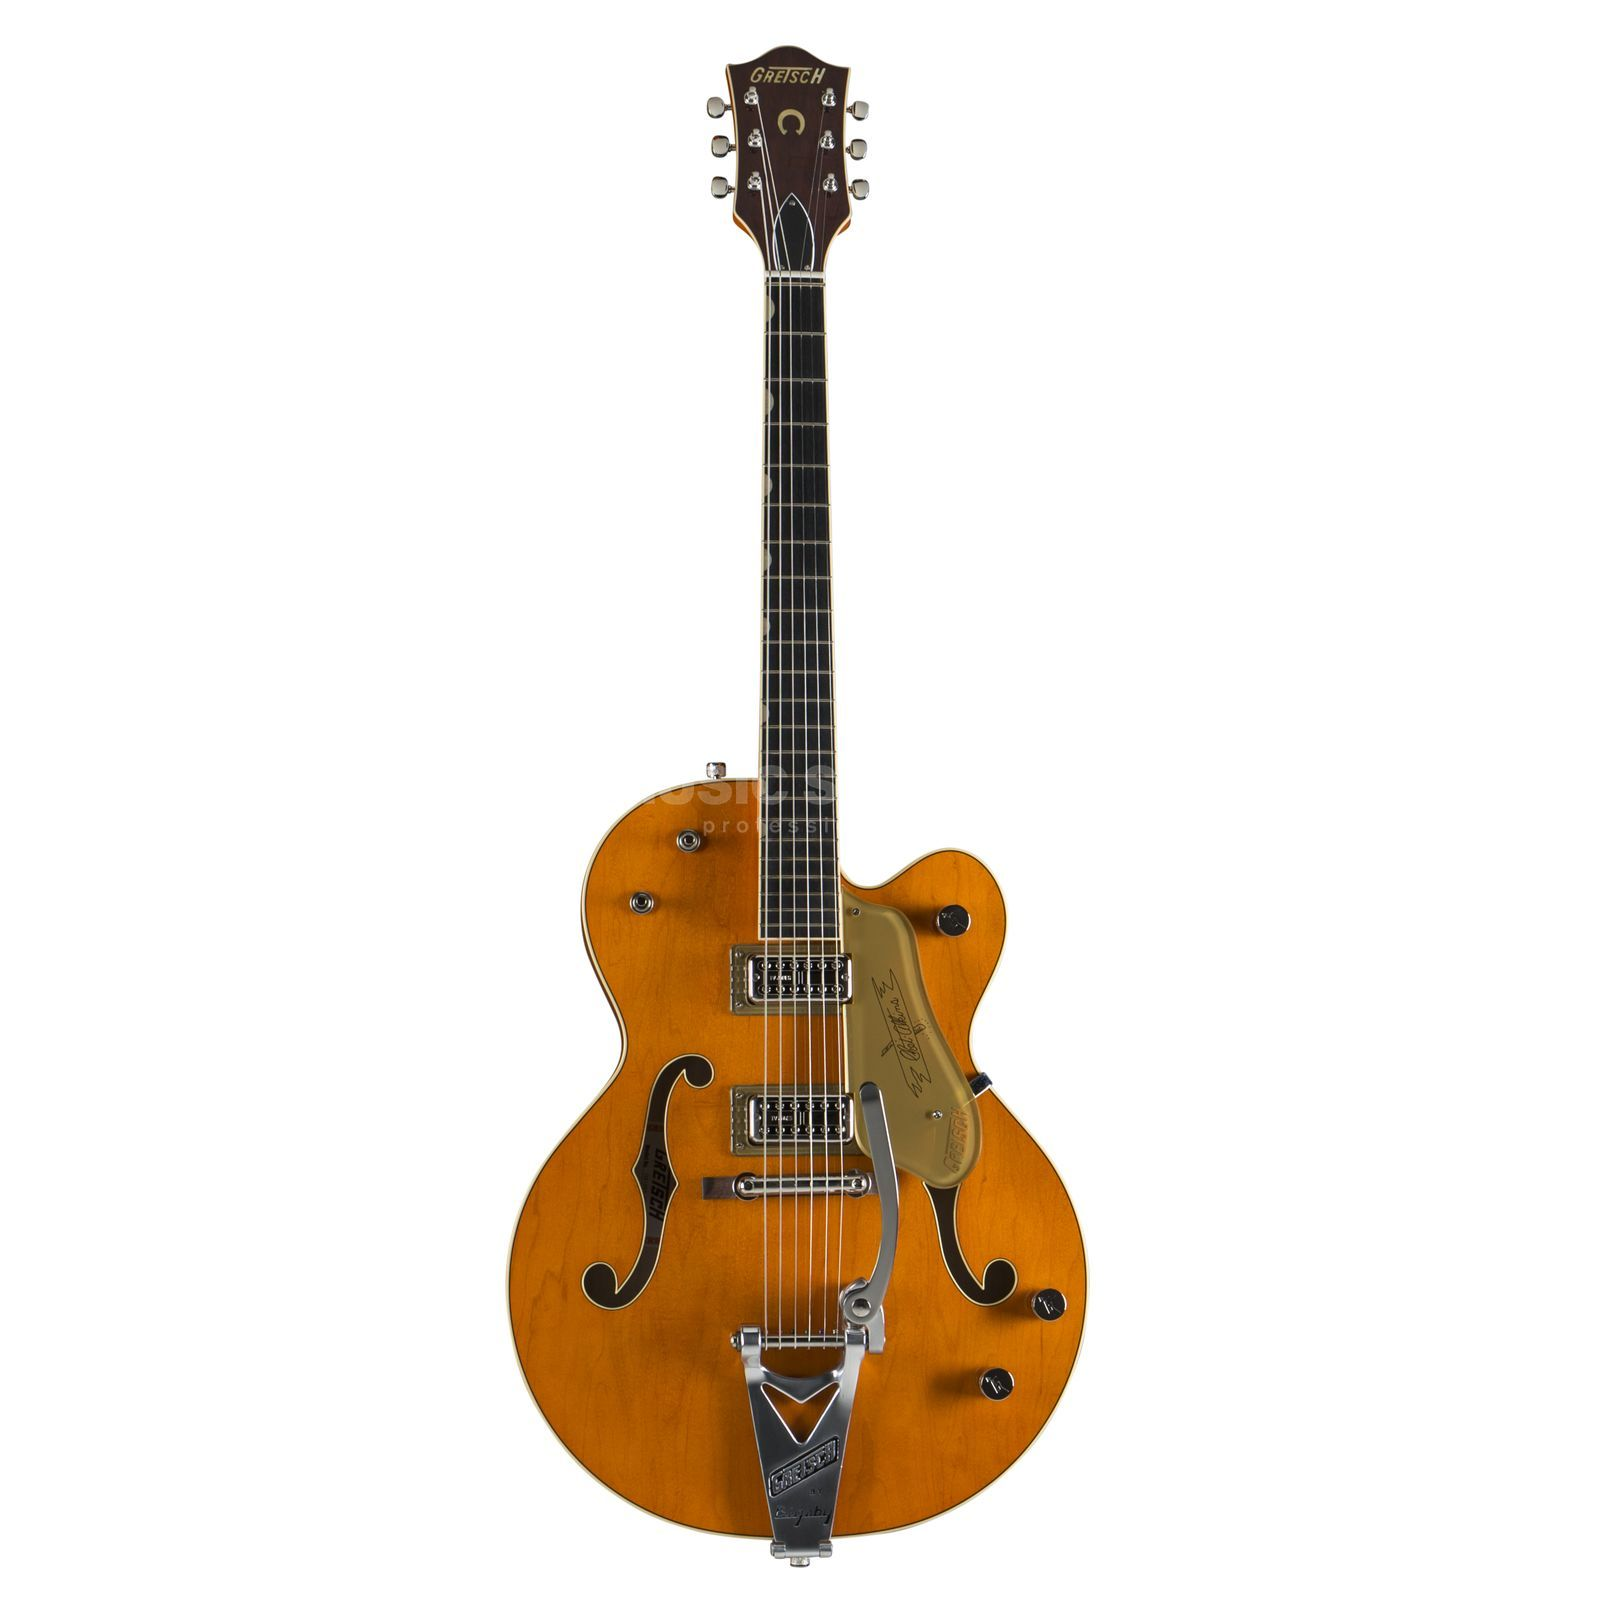 Gretsch G6120T-59 VSE Chet Atkins Hollow Body Bigsby Vintage Orange Stain Lacquer Produktbild